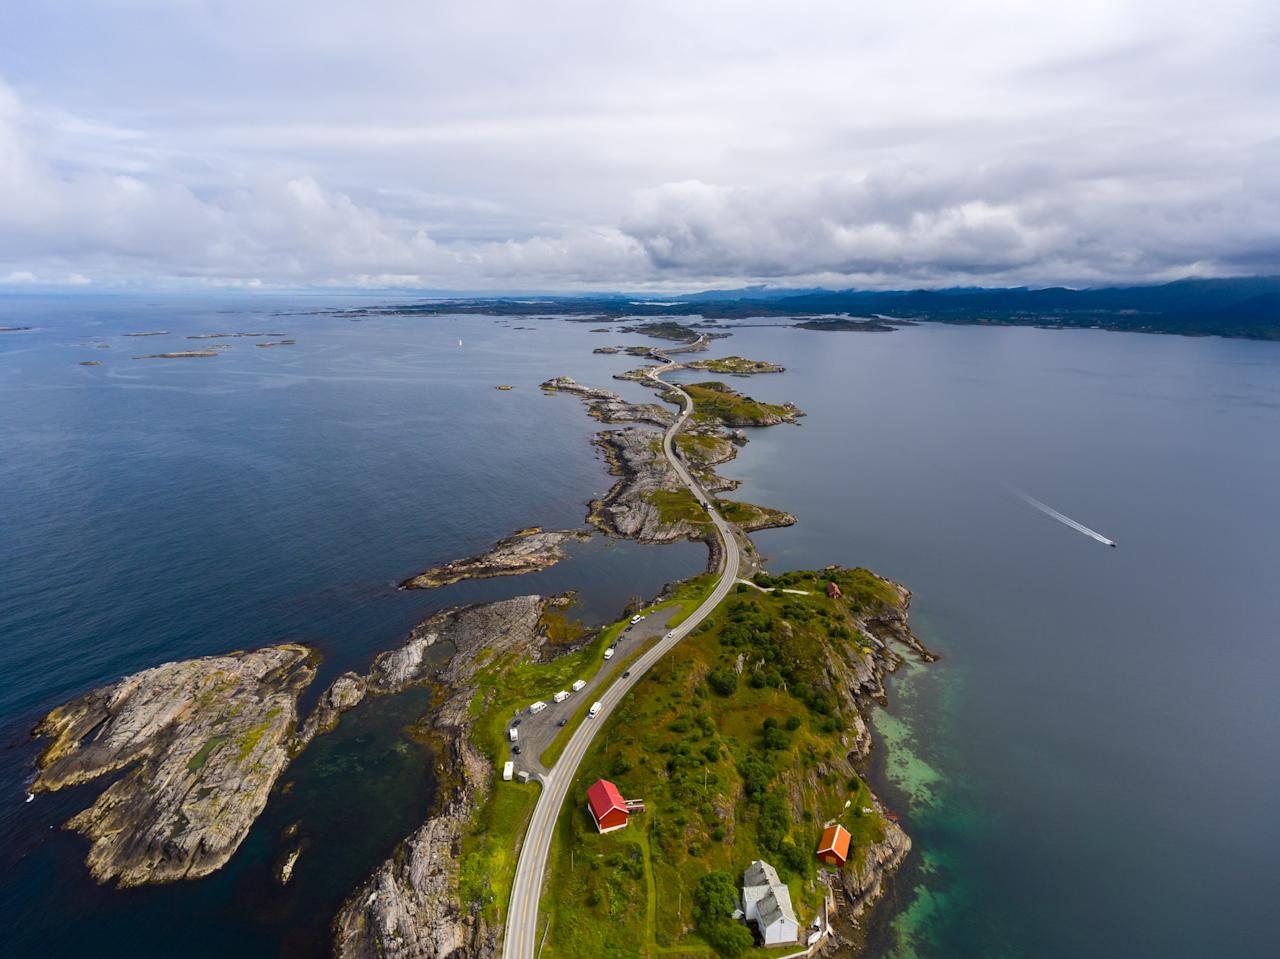 "Completed in 1989, the <strong>Atlantic Road</strong> is a 5.2-mile section of County Road 64 that runs through an archipelago in Eide and Averøy in Møre og Romsdal, Norway. The route is built on several small islands, which are connected by eight bridges.""/><figcaption>این جاده زیبا یا بسیار زیبا در نروژ است </figcaption></figure>    <figure class="